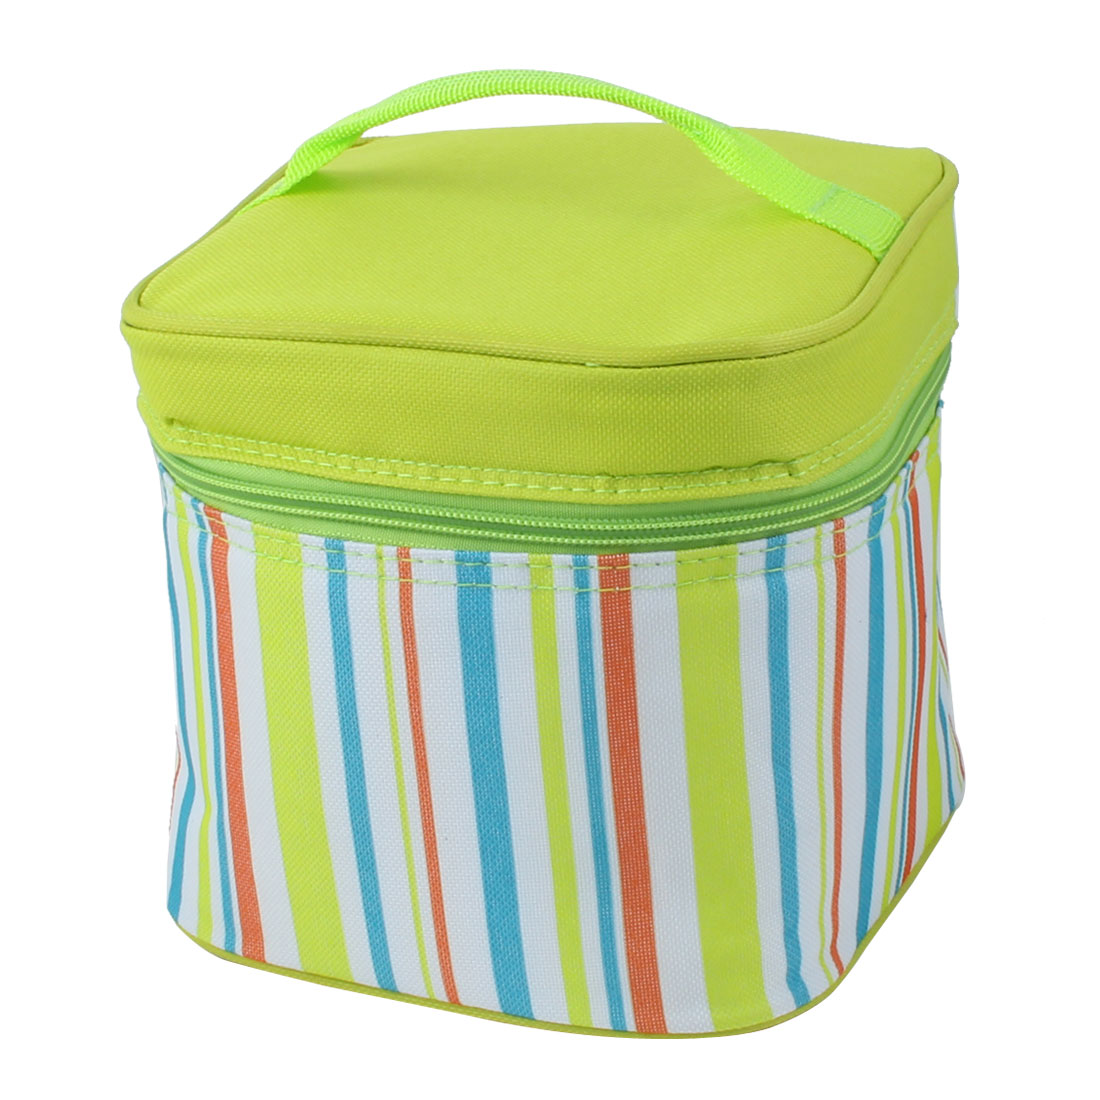 Travel Portable Stripes Design Thermal Cooler Insulated Lunch Box Storage Picnic Bag Tote Pouch Green